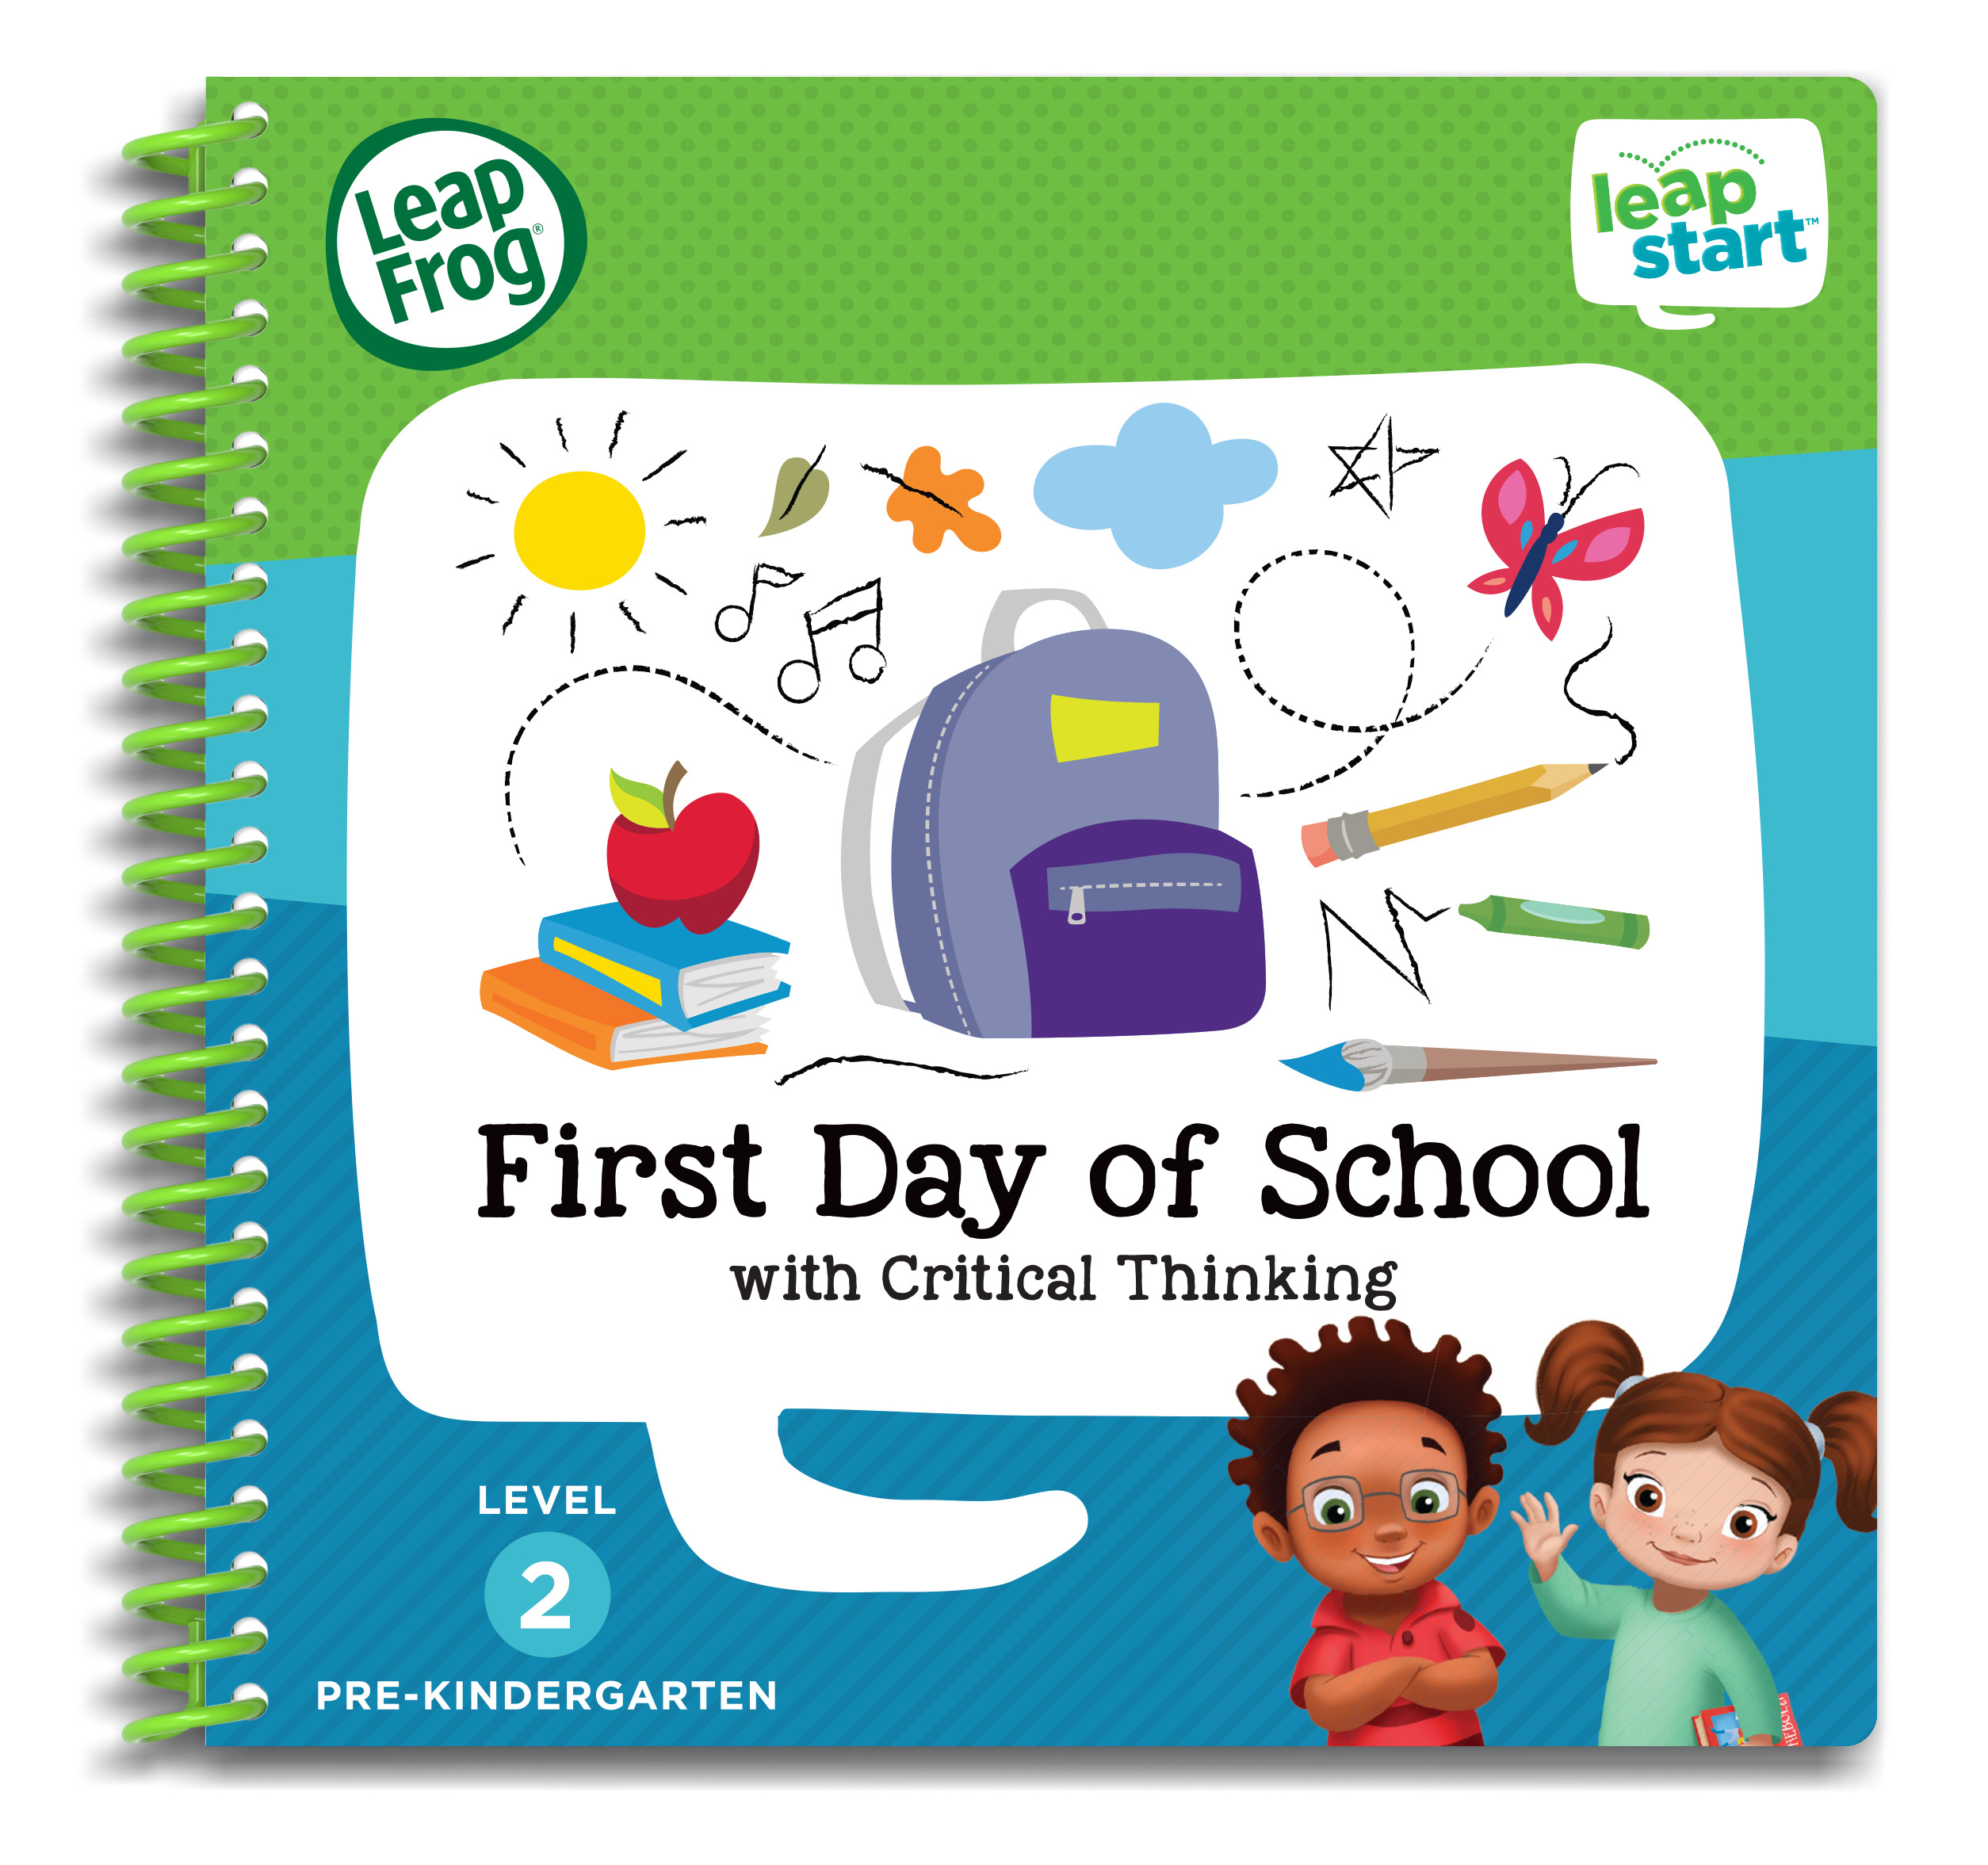 LeapFrog LeapStart Pre-Kindergarten Activity Book: First Day of School and Critical Thinking